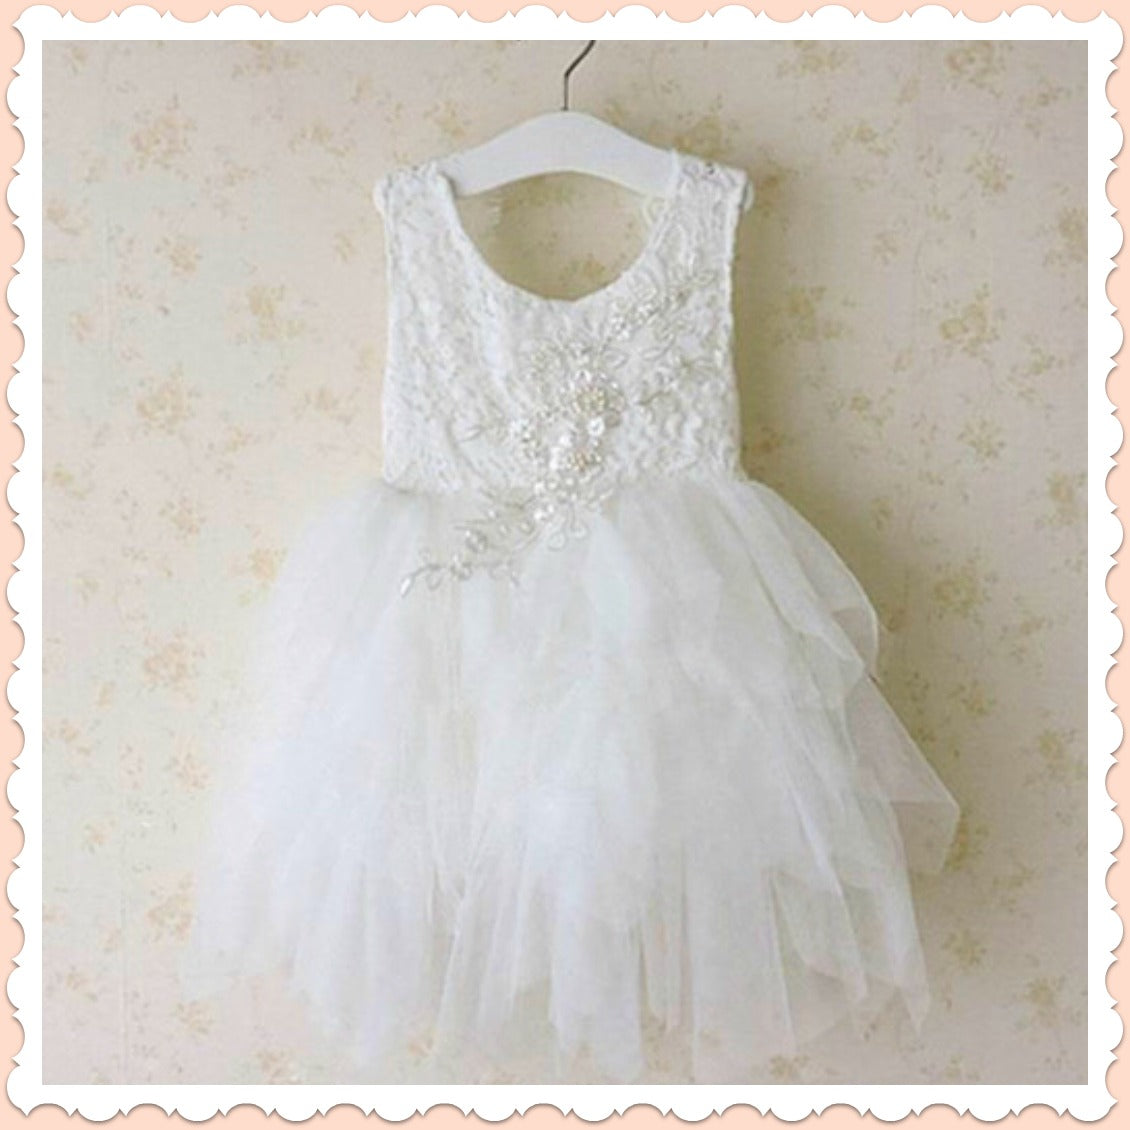 Fanciful Flower Girl Dress in white